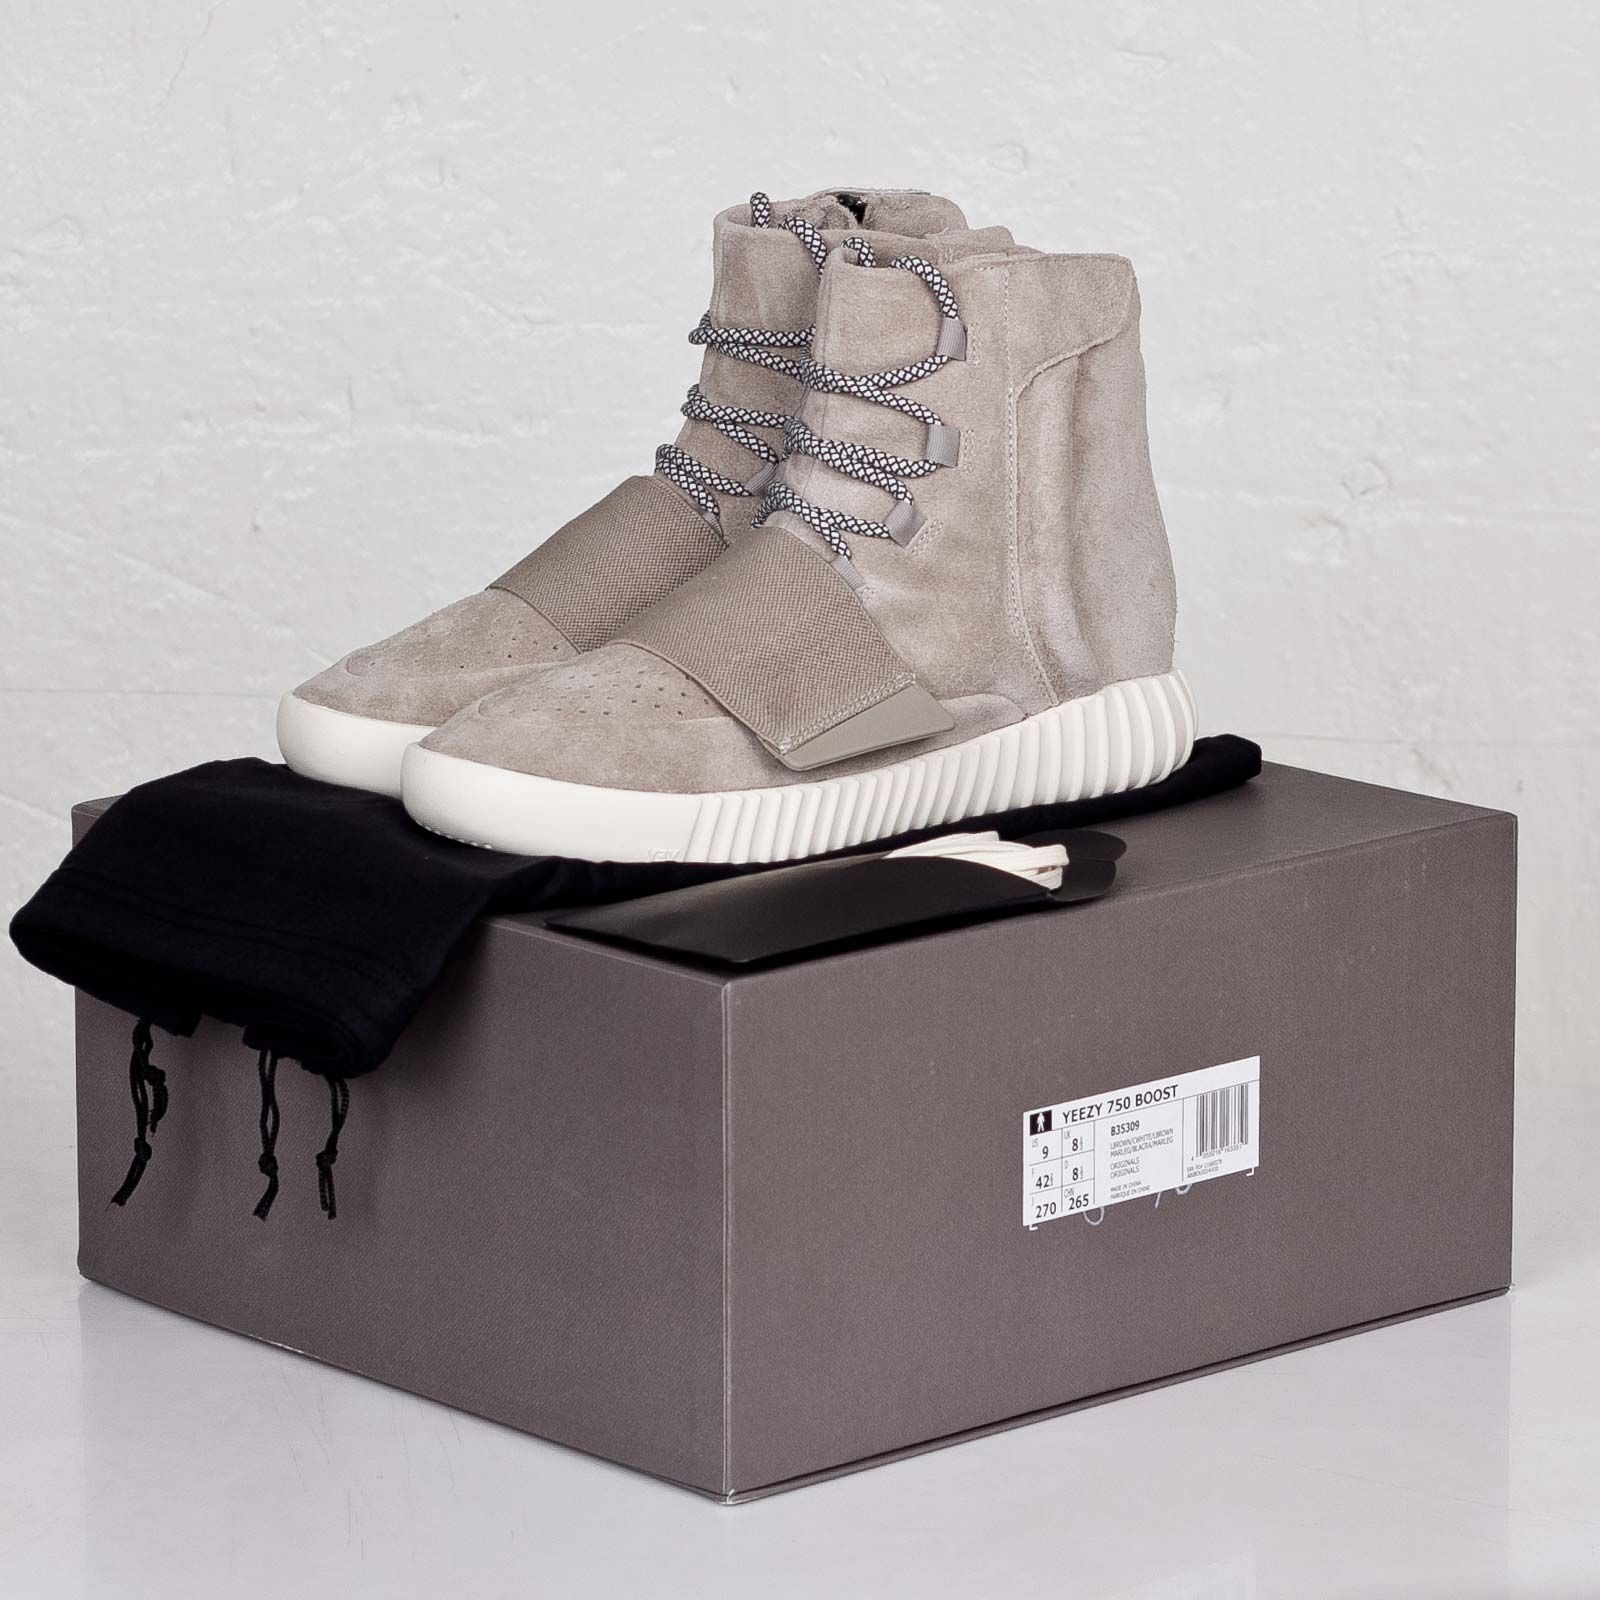 official photos b02af fba4e Yeezy 750, Yeezy Boost 750, New Sneakers, Sneakers